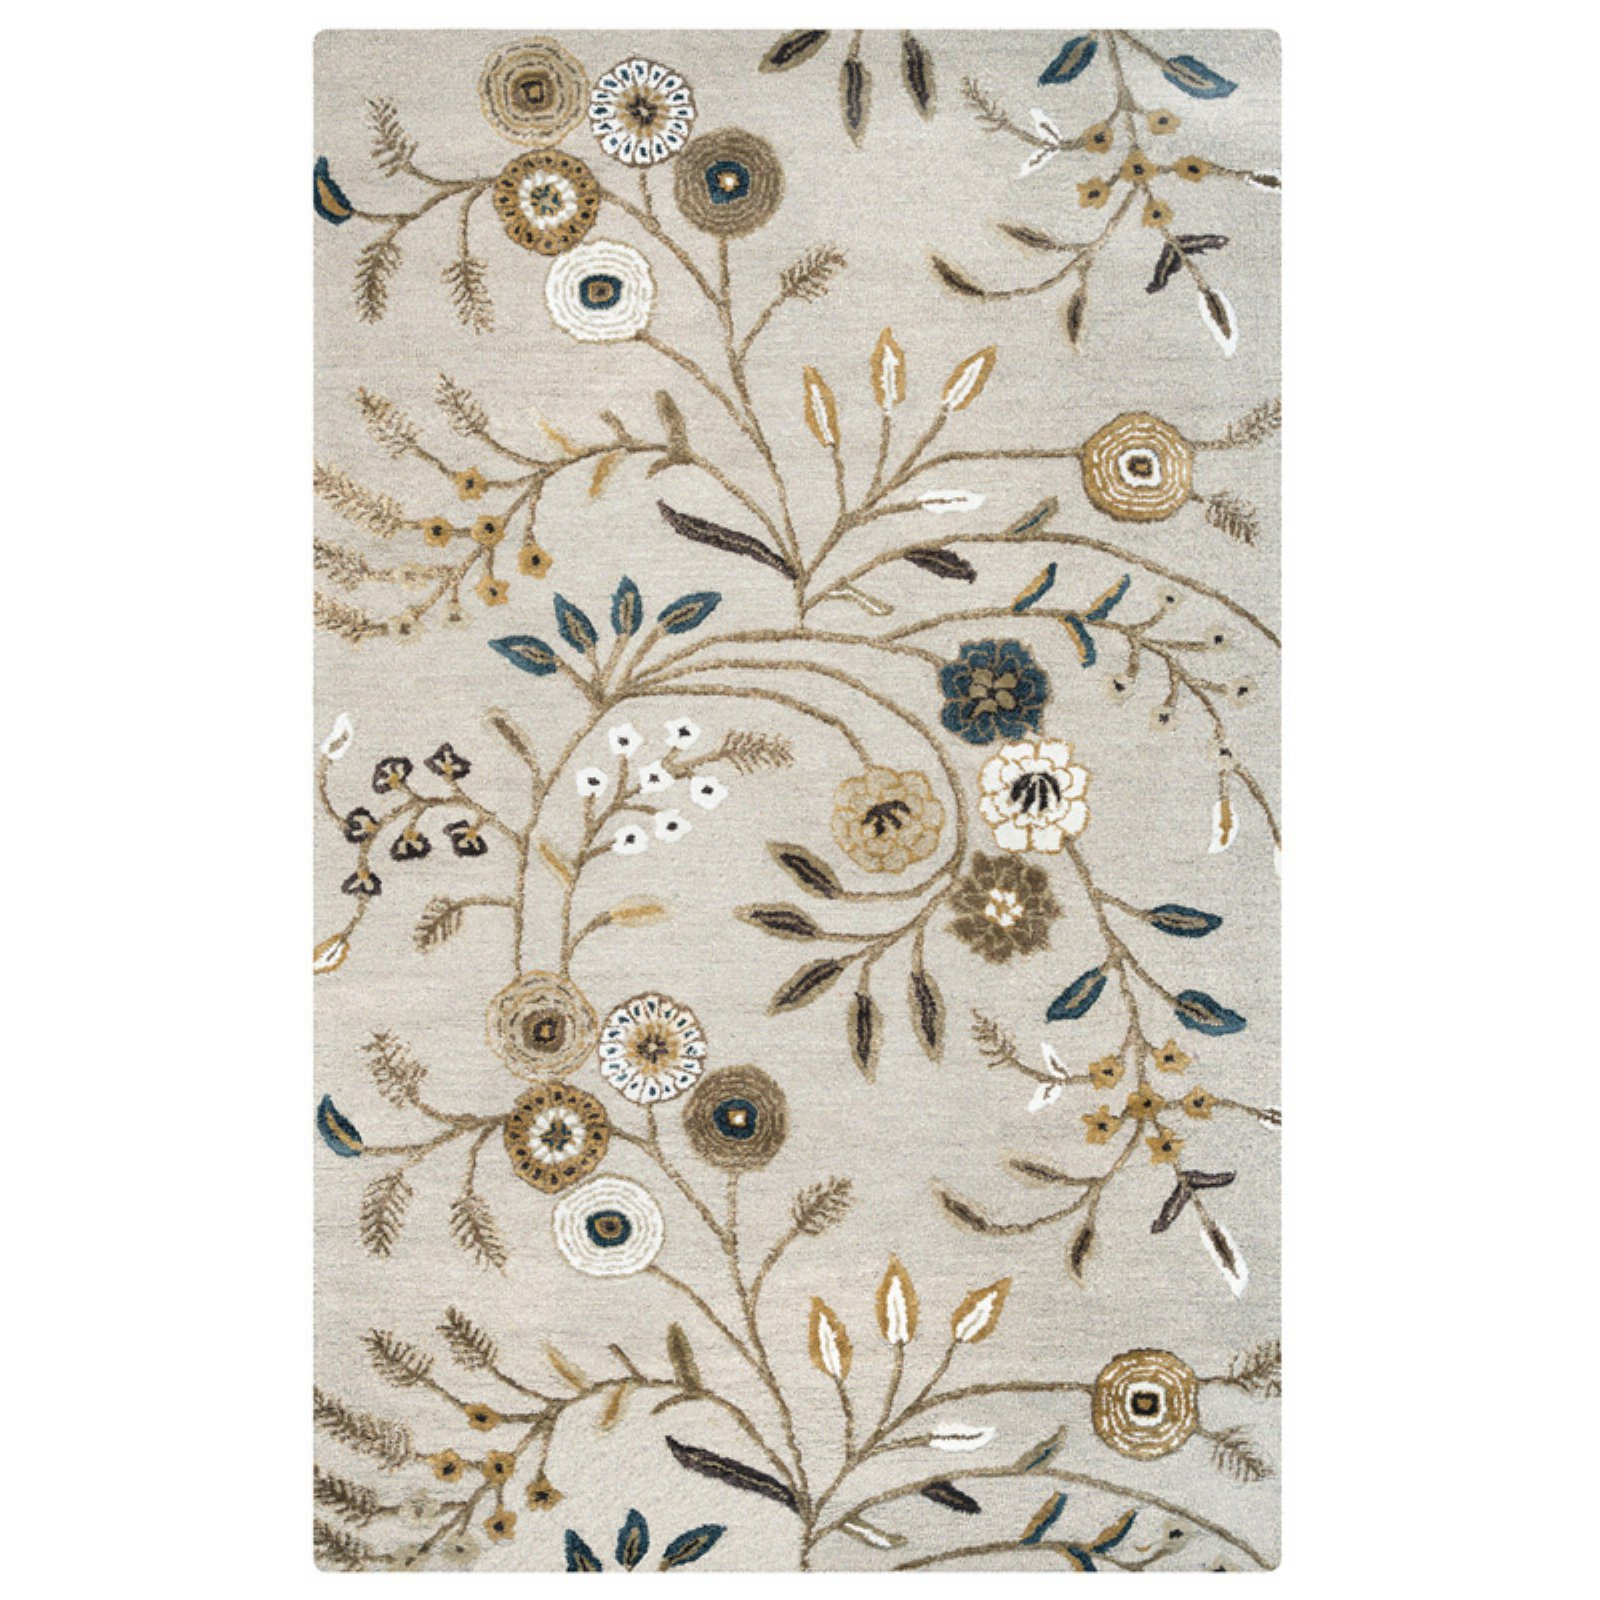 Rizzy Home Eden Harbor Hand-Tufted Area Rug 9 Ft. X 12 Ft. Multicolored Model EDHEH8879BE000912